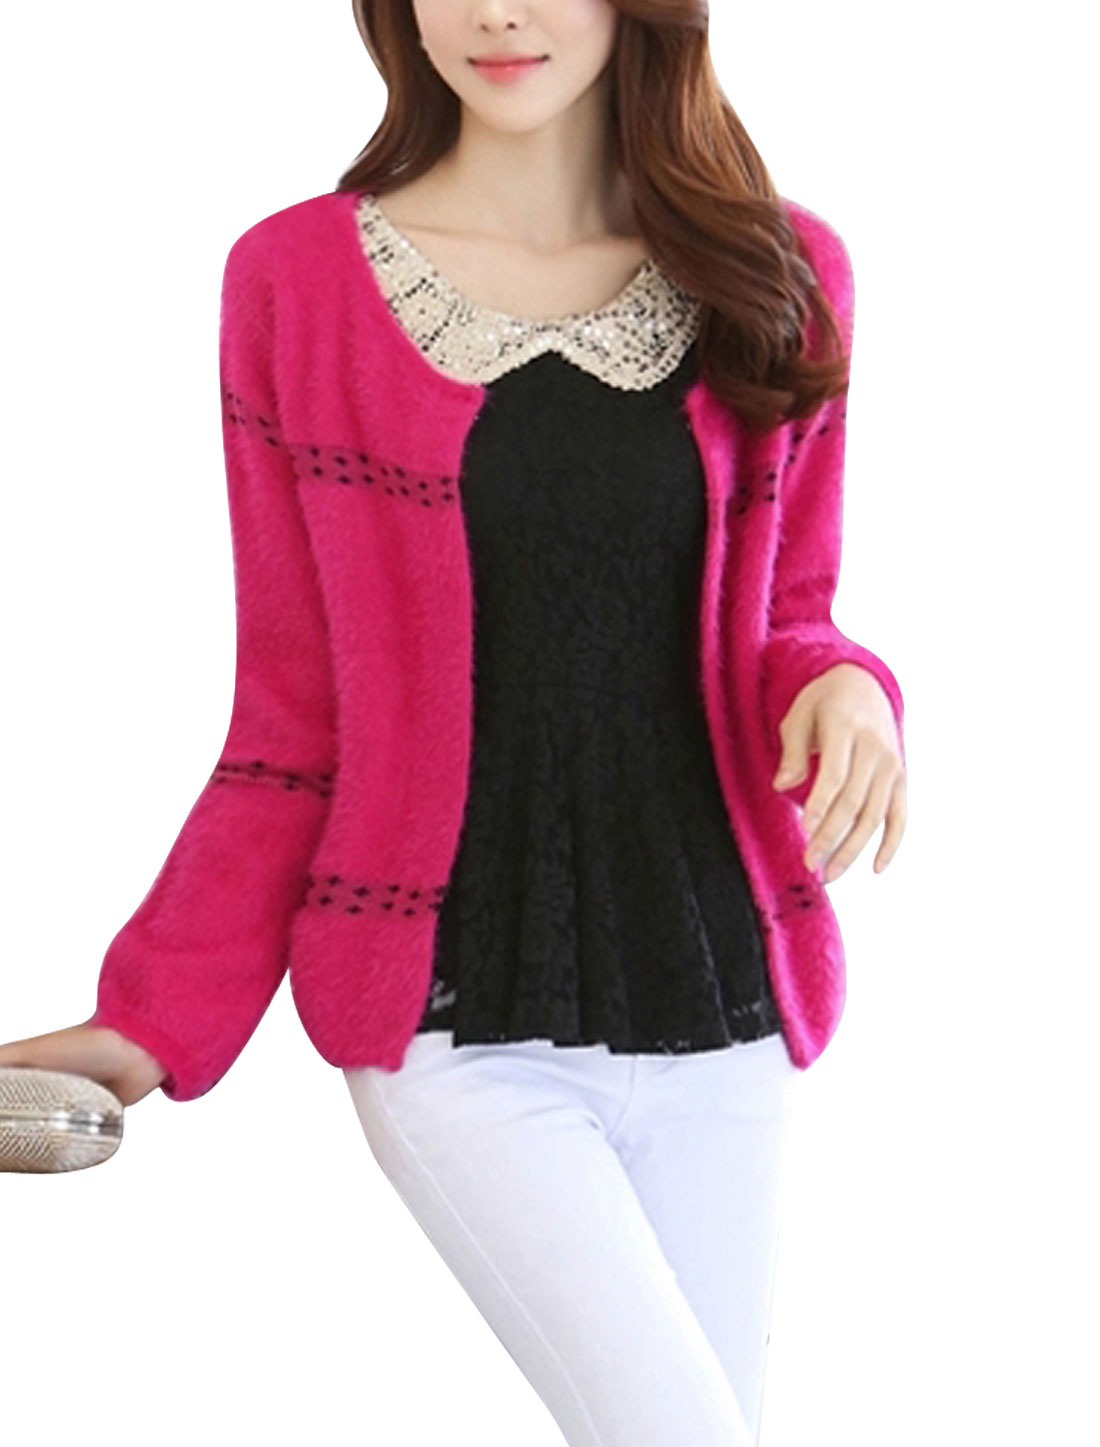 Lady Front Openig Long Sleeve Fashionable Cardigan w Pearl Brooch Fuchsia S